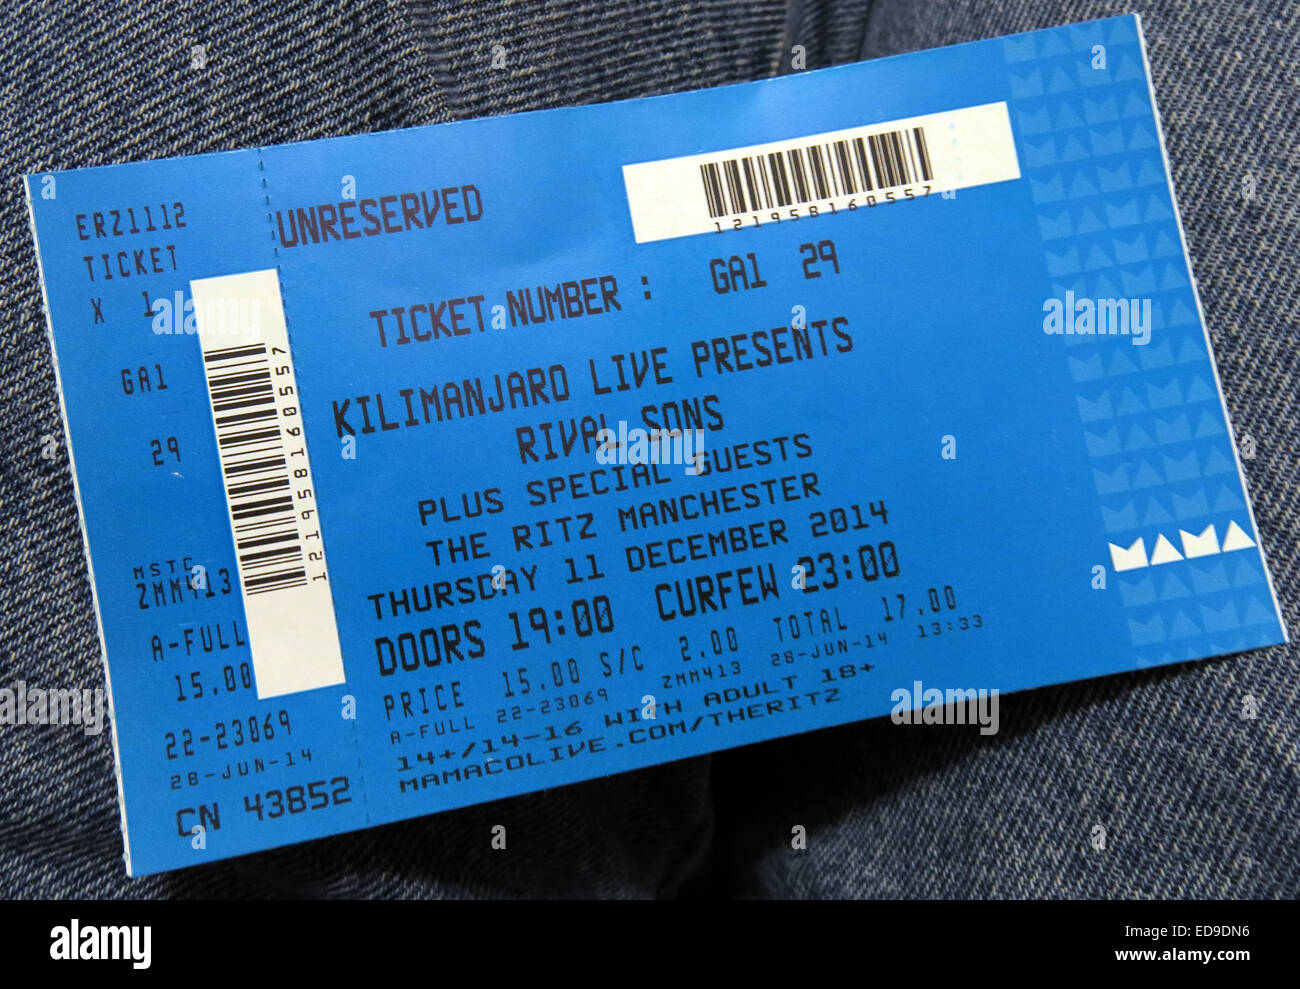 Rival sons blue gig ticket Manchester Ritz 2014, England, UK - Stock Image